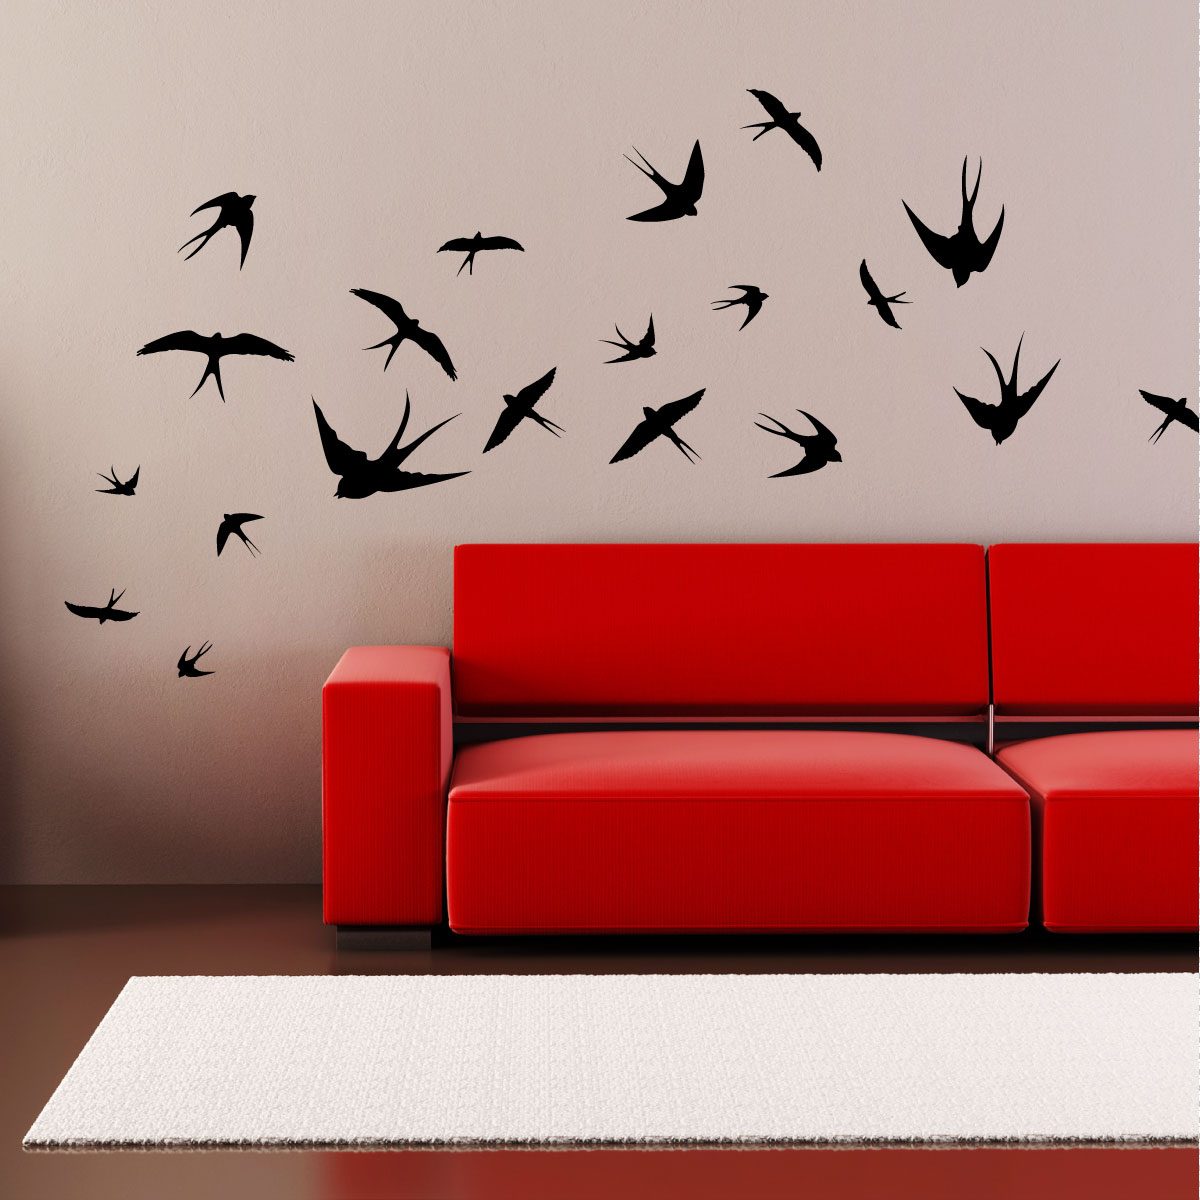 stickers muraux design sticker mural 20 hirondelles ambiance. Black Bedroom Furniture Sets. Home Design Ideas